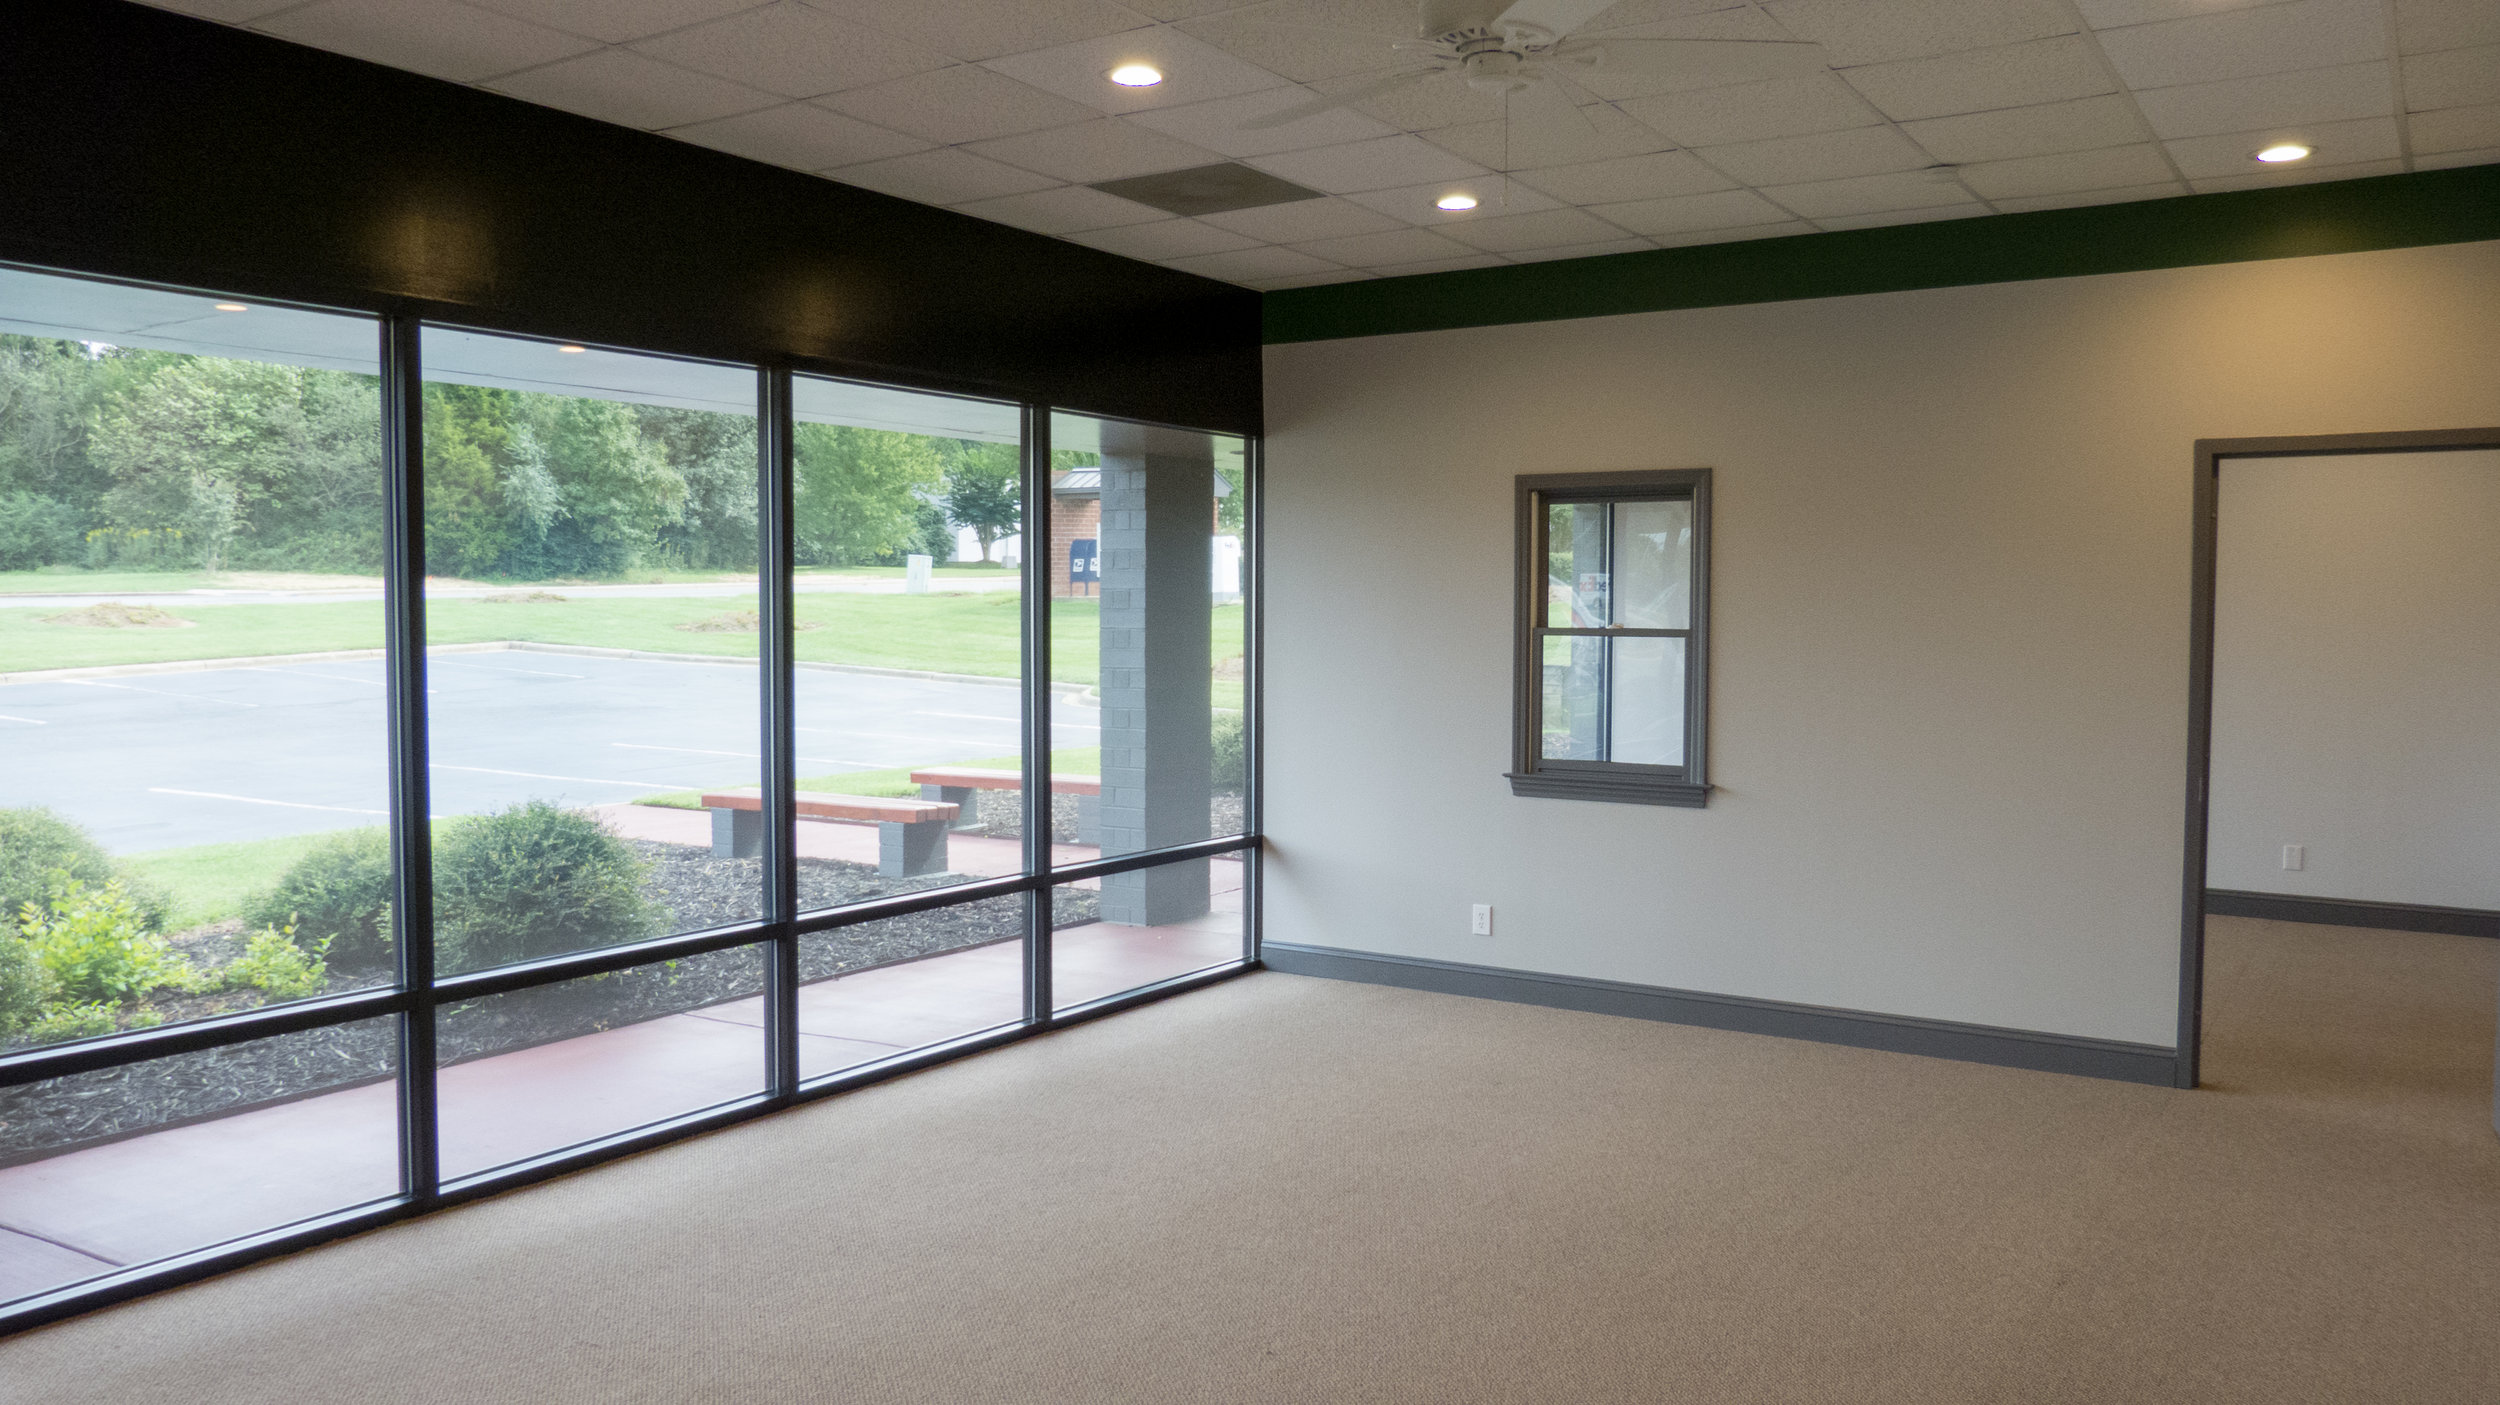 entire unit uses efficient LEd lighting to keep energy costs low